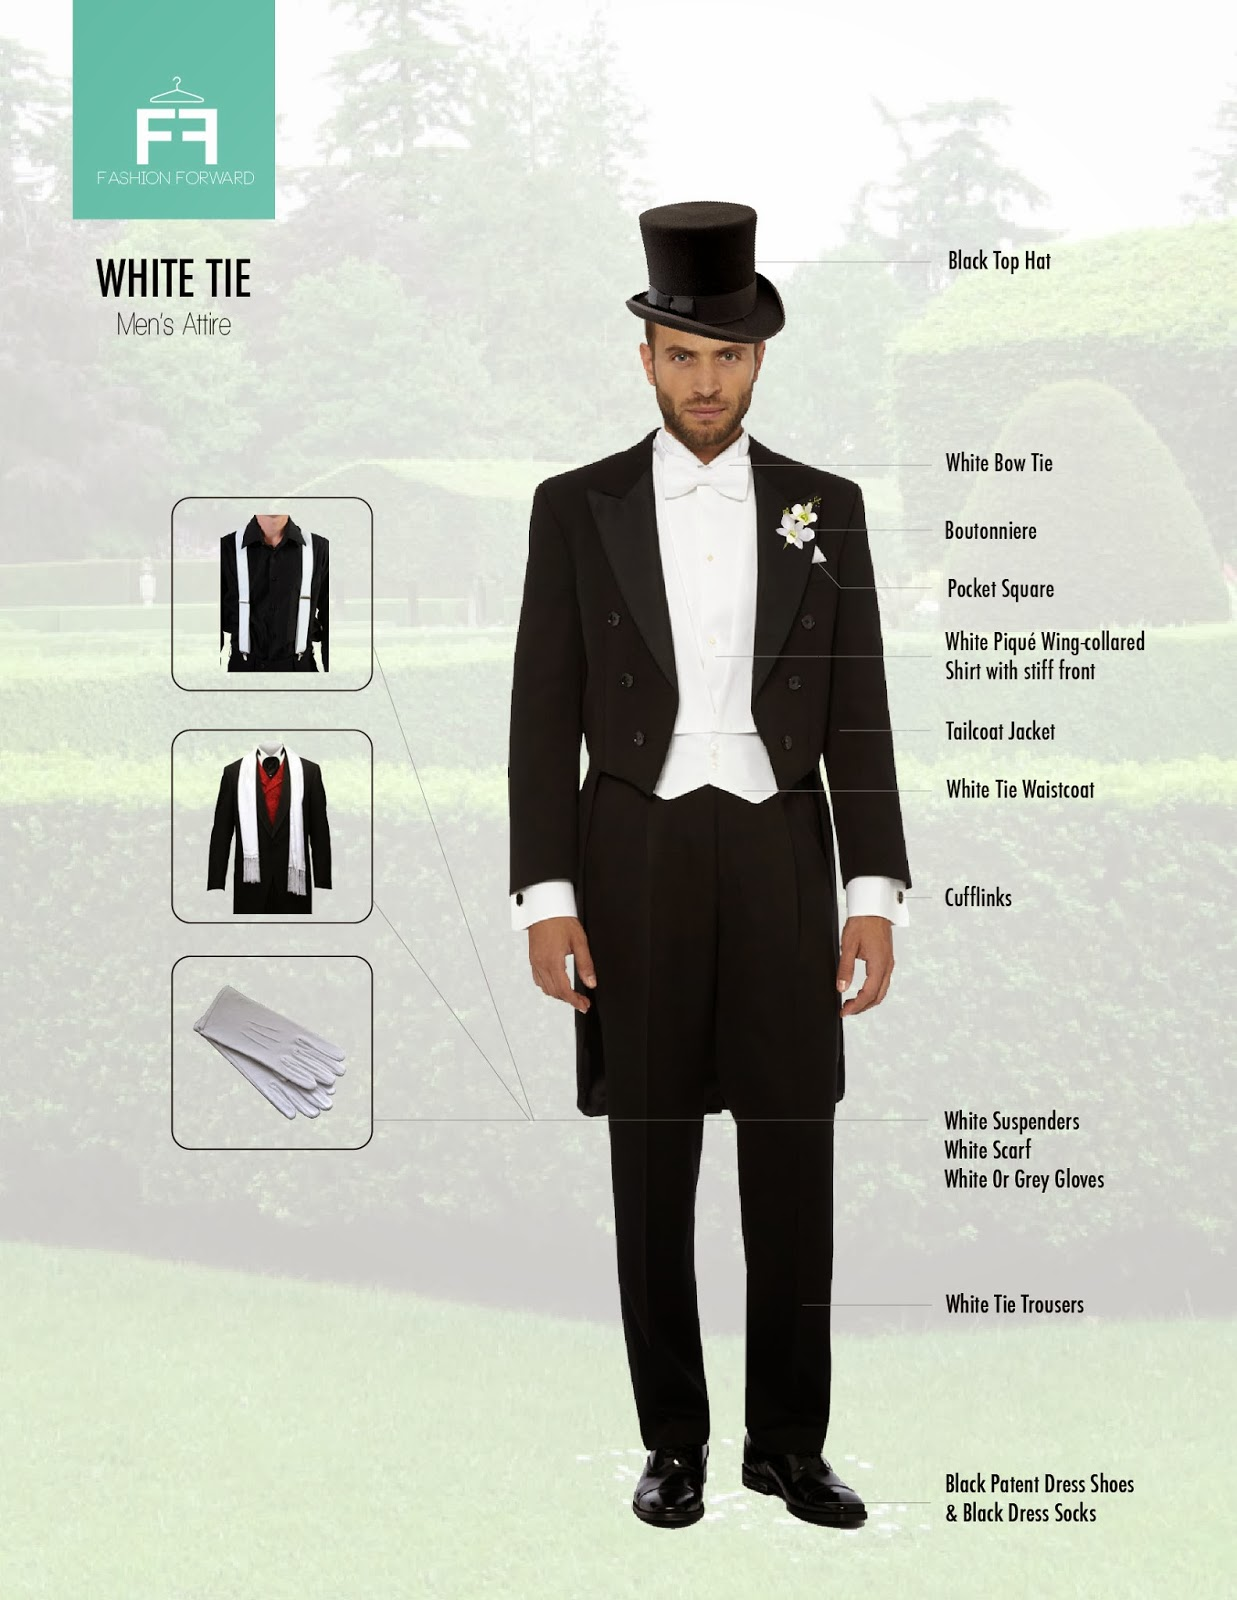 Perfect Formal White Tie Dress Code | Bows-N-Ties.com